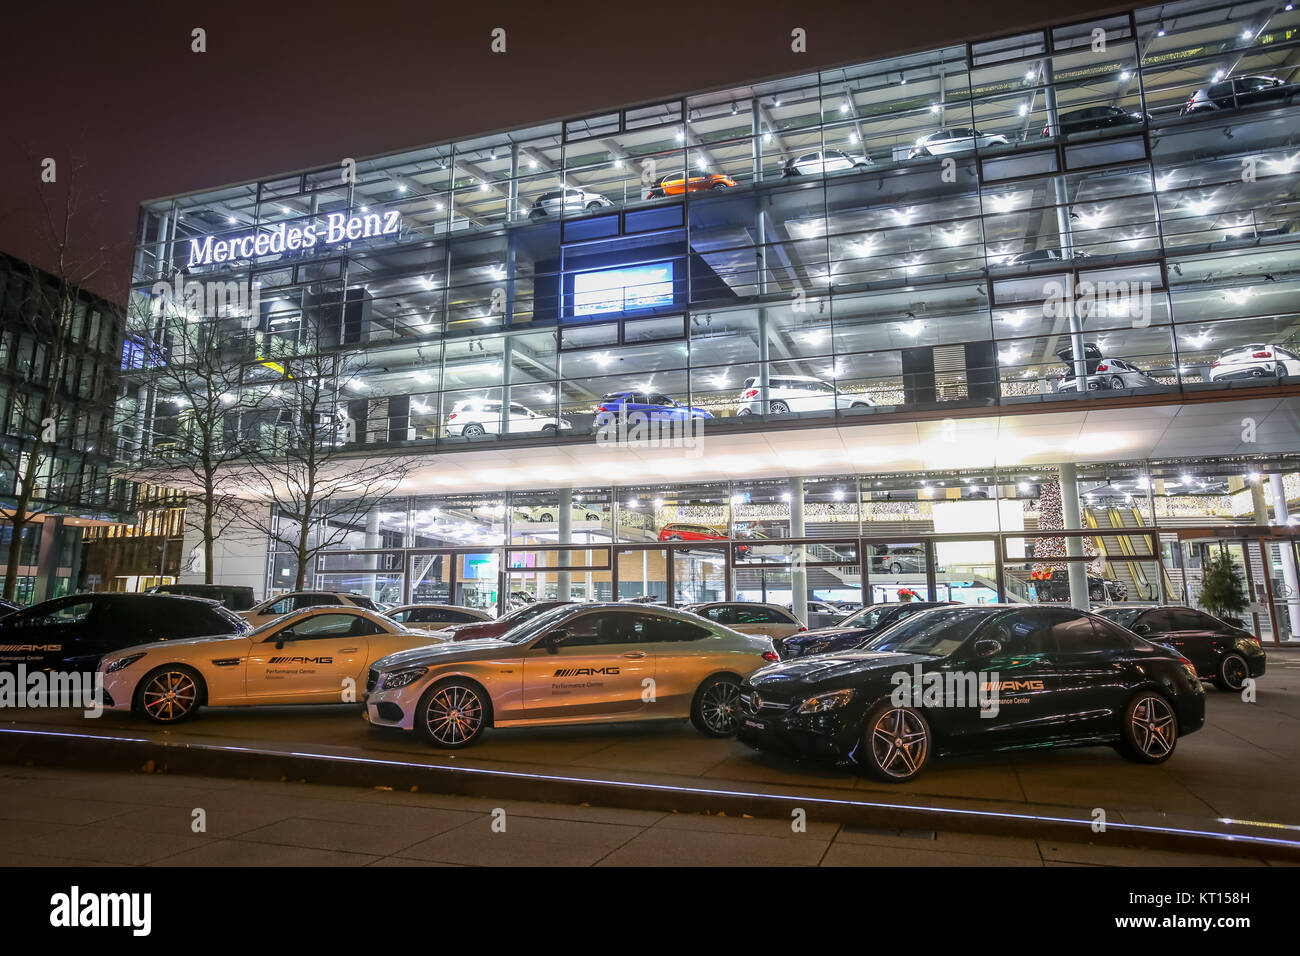 MUNICH, GERMANY - DECEMBER 11, 2017 : Exhibited cars parked in front of the Mercedes Benz dealership building at Stock Photo